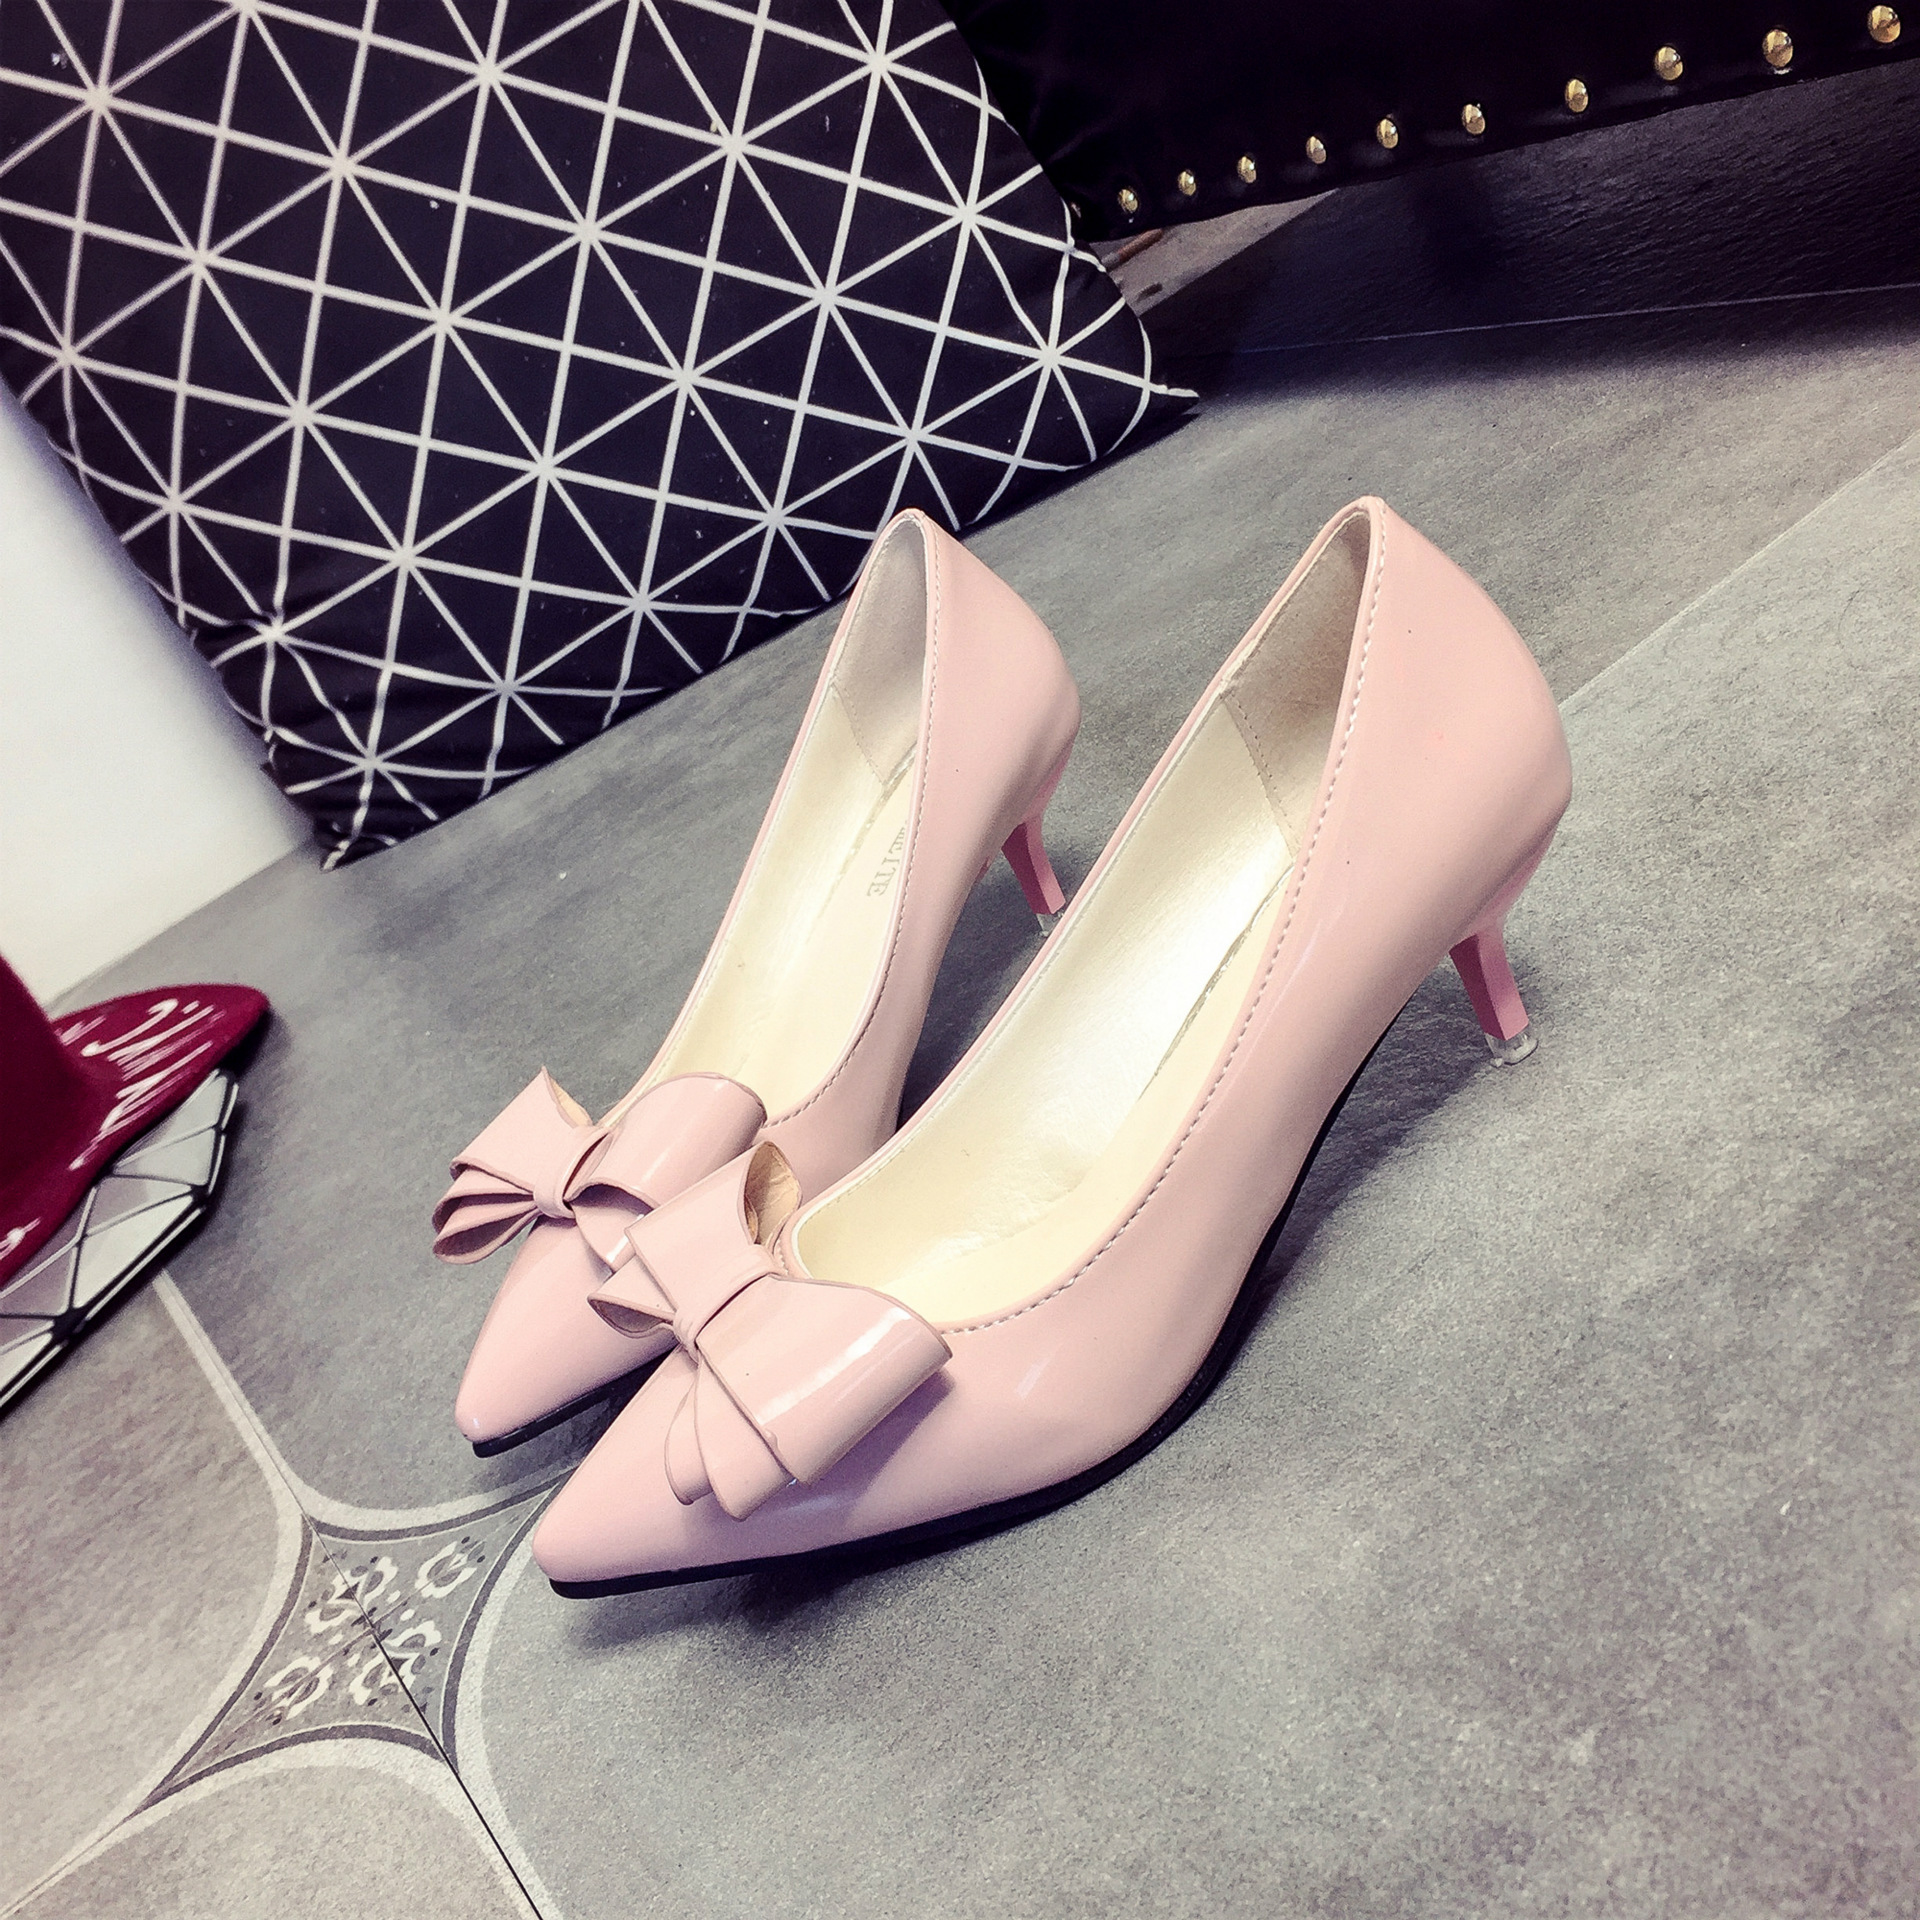 3081a279d1 Buy shoes modelling and get free shipping on AliExpress.com